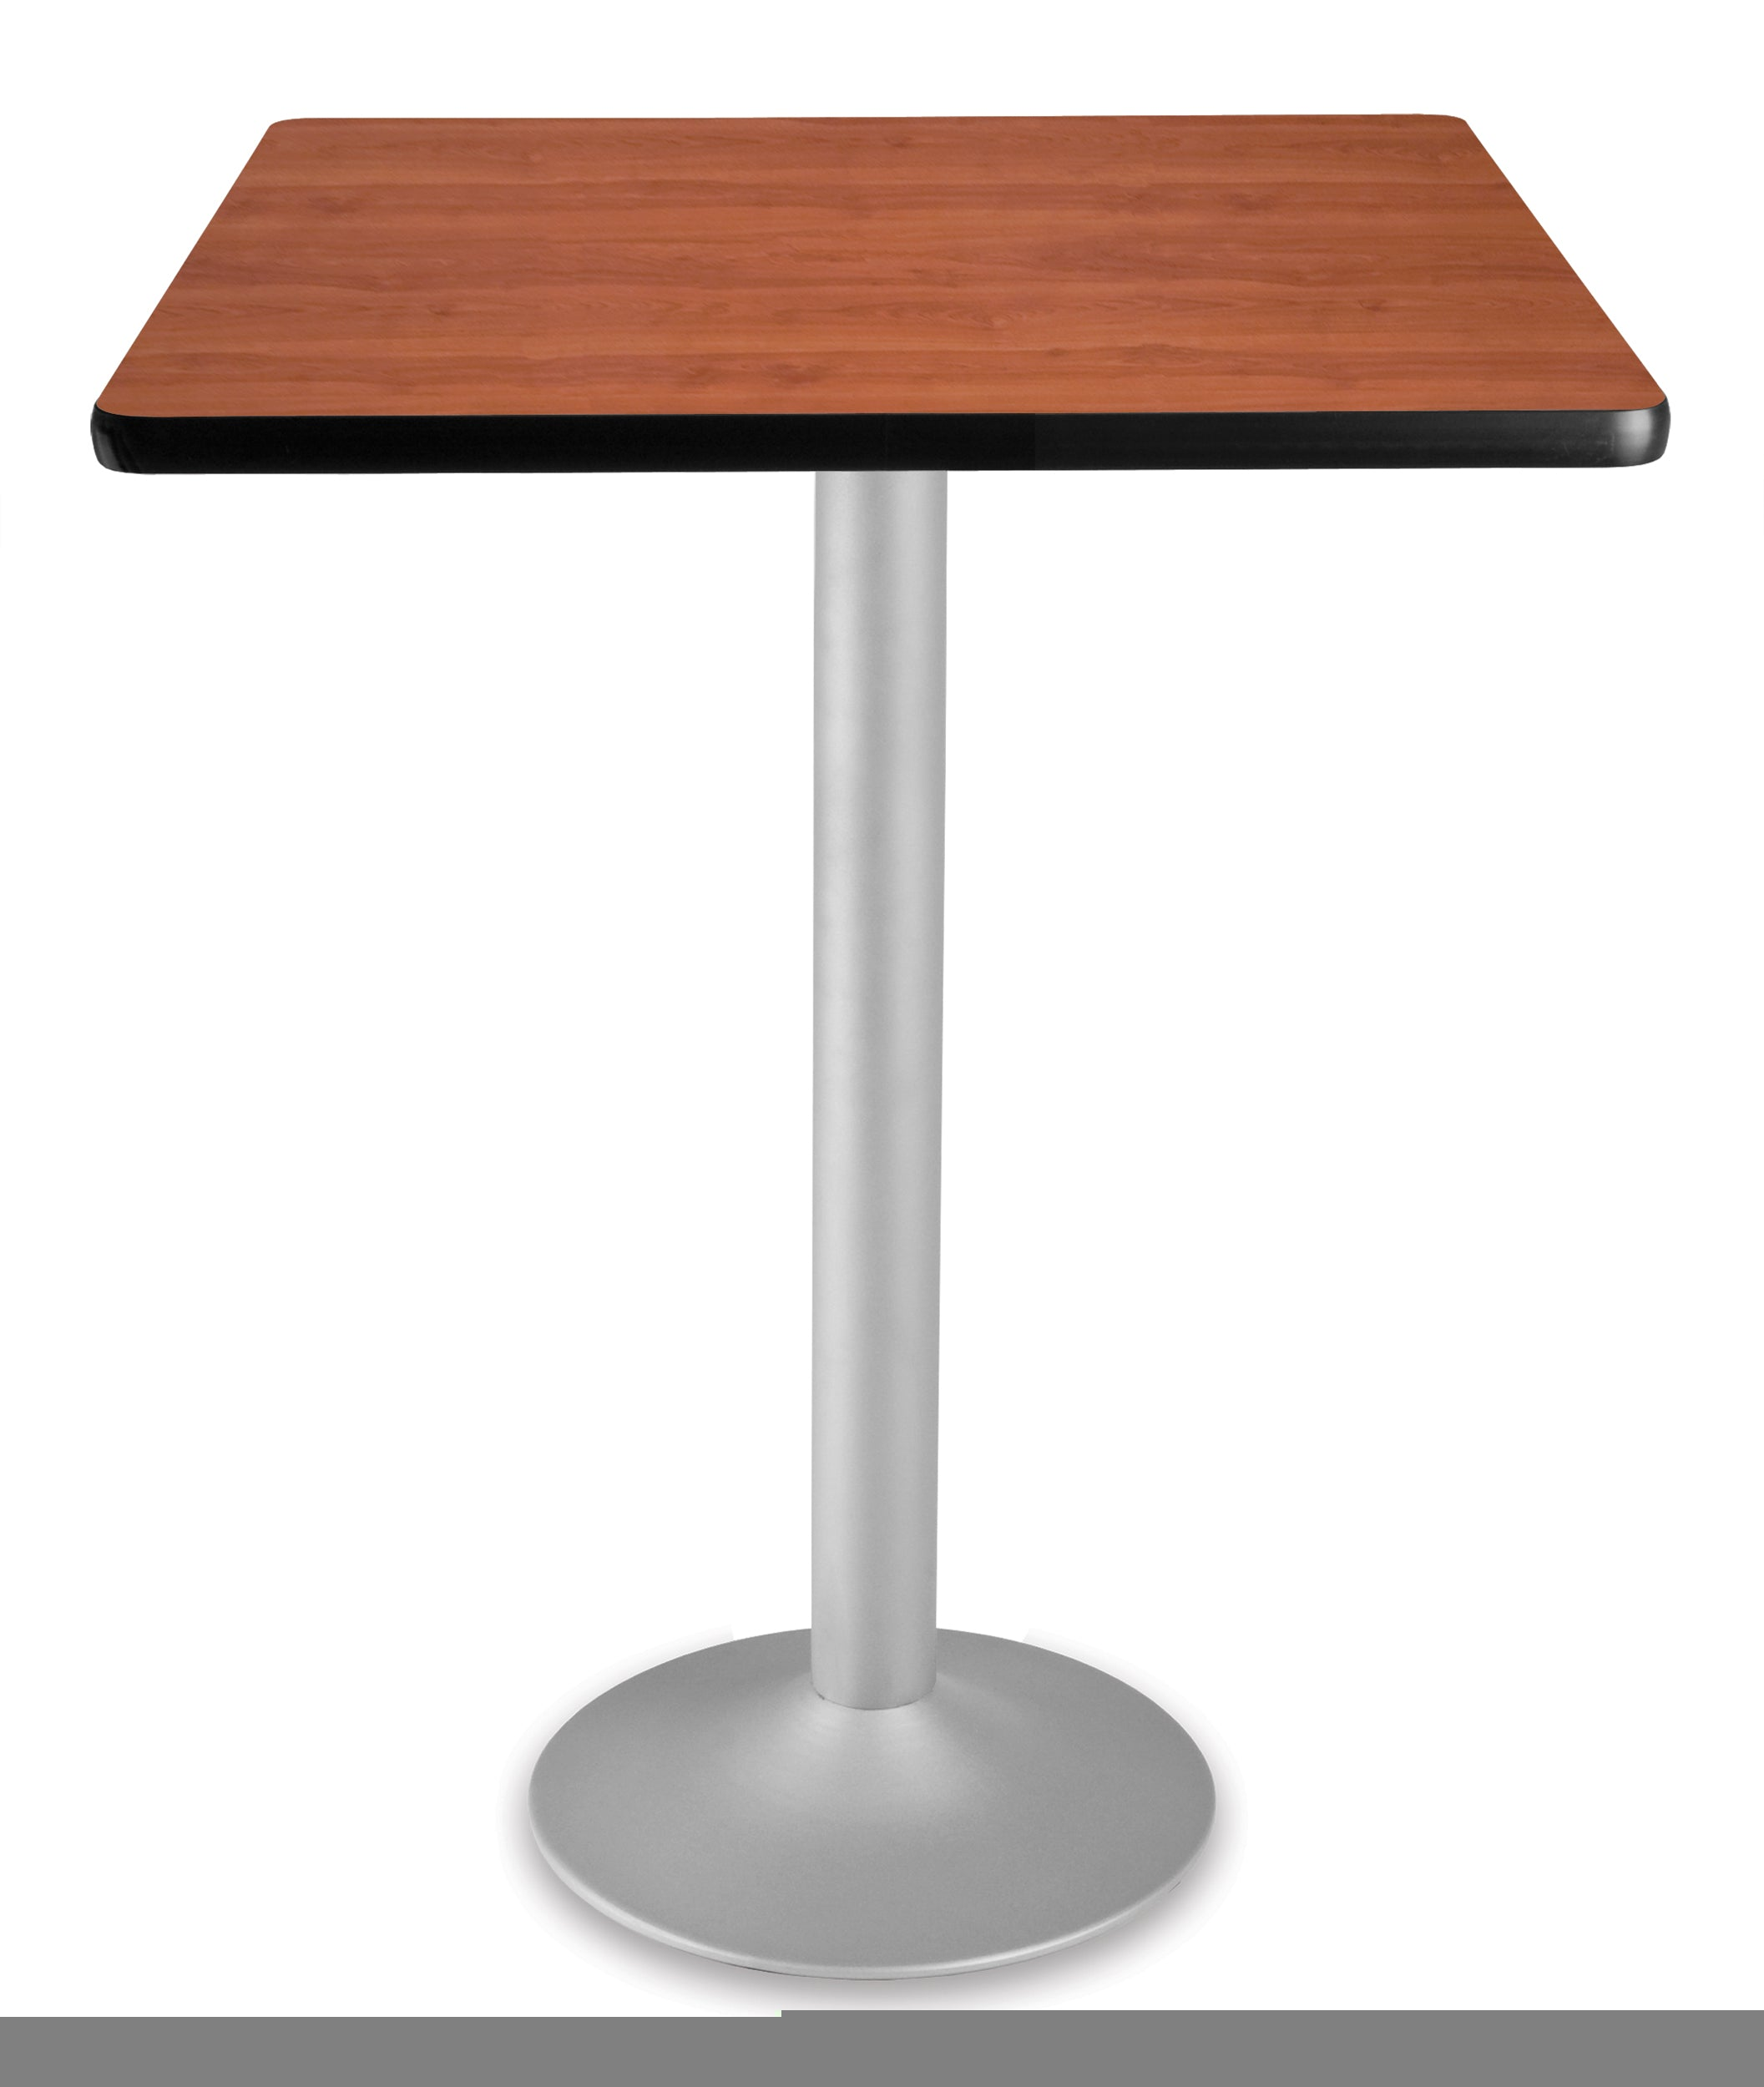 CFT30SQ Square Cafe Height Folding Table with Pedestal Base 30 Inch